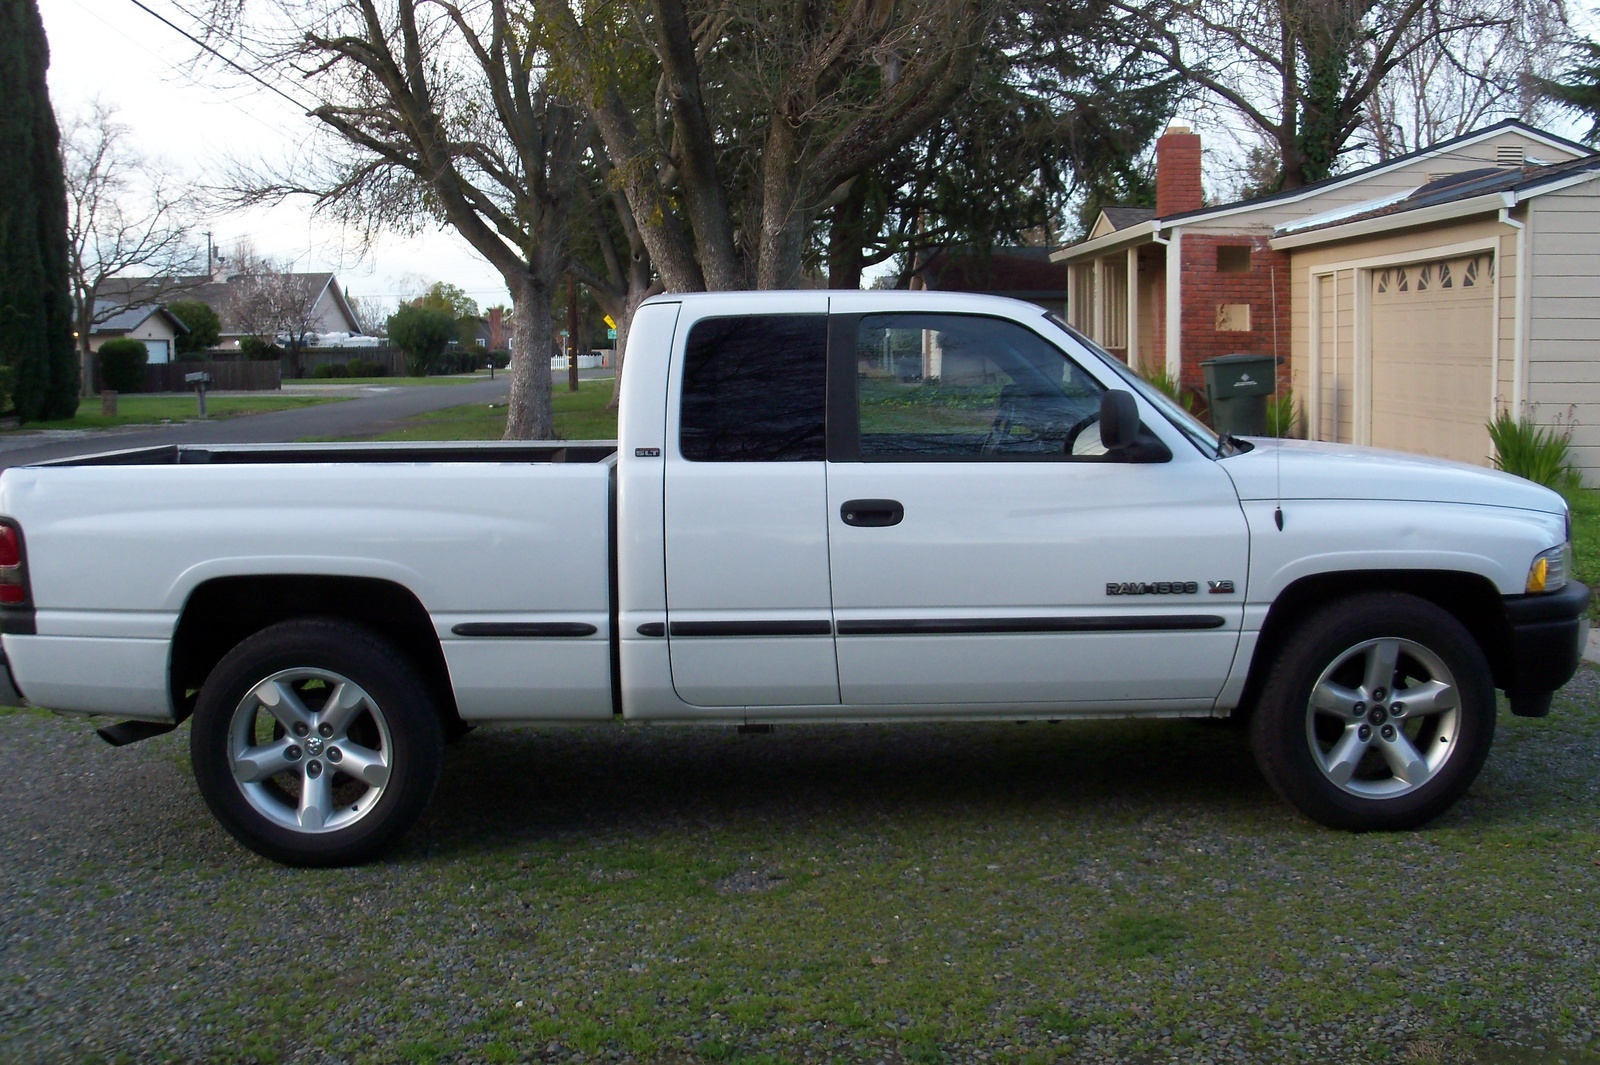 I just bought a 1999 dodge ram 1500 2wd the former owner had put 20 wheels on it while driving now i am experiencing a bit of a shimmy in it